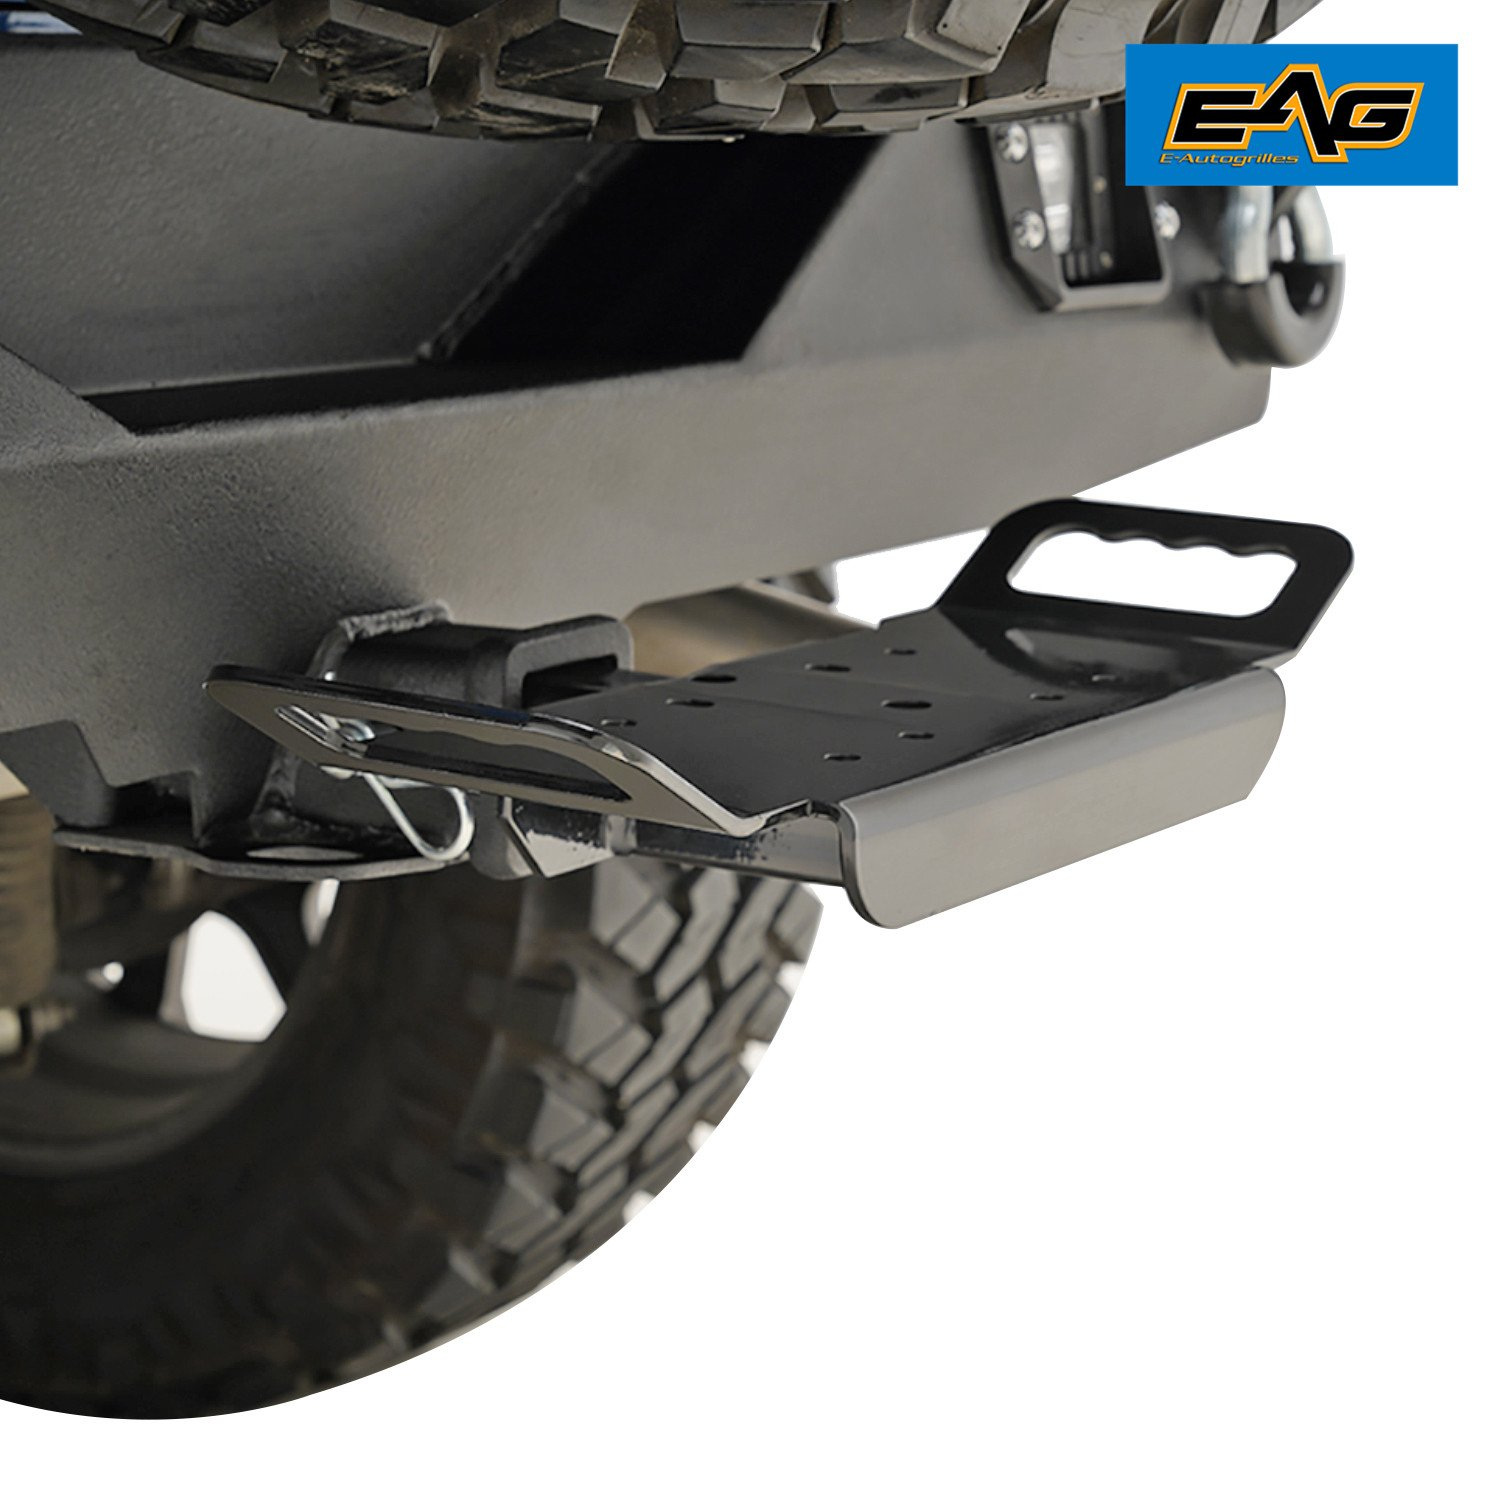 EAG 2' Universal Receiver Carrier Mount with Handle E-Autogrilles